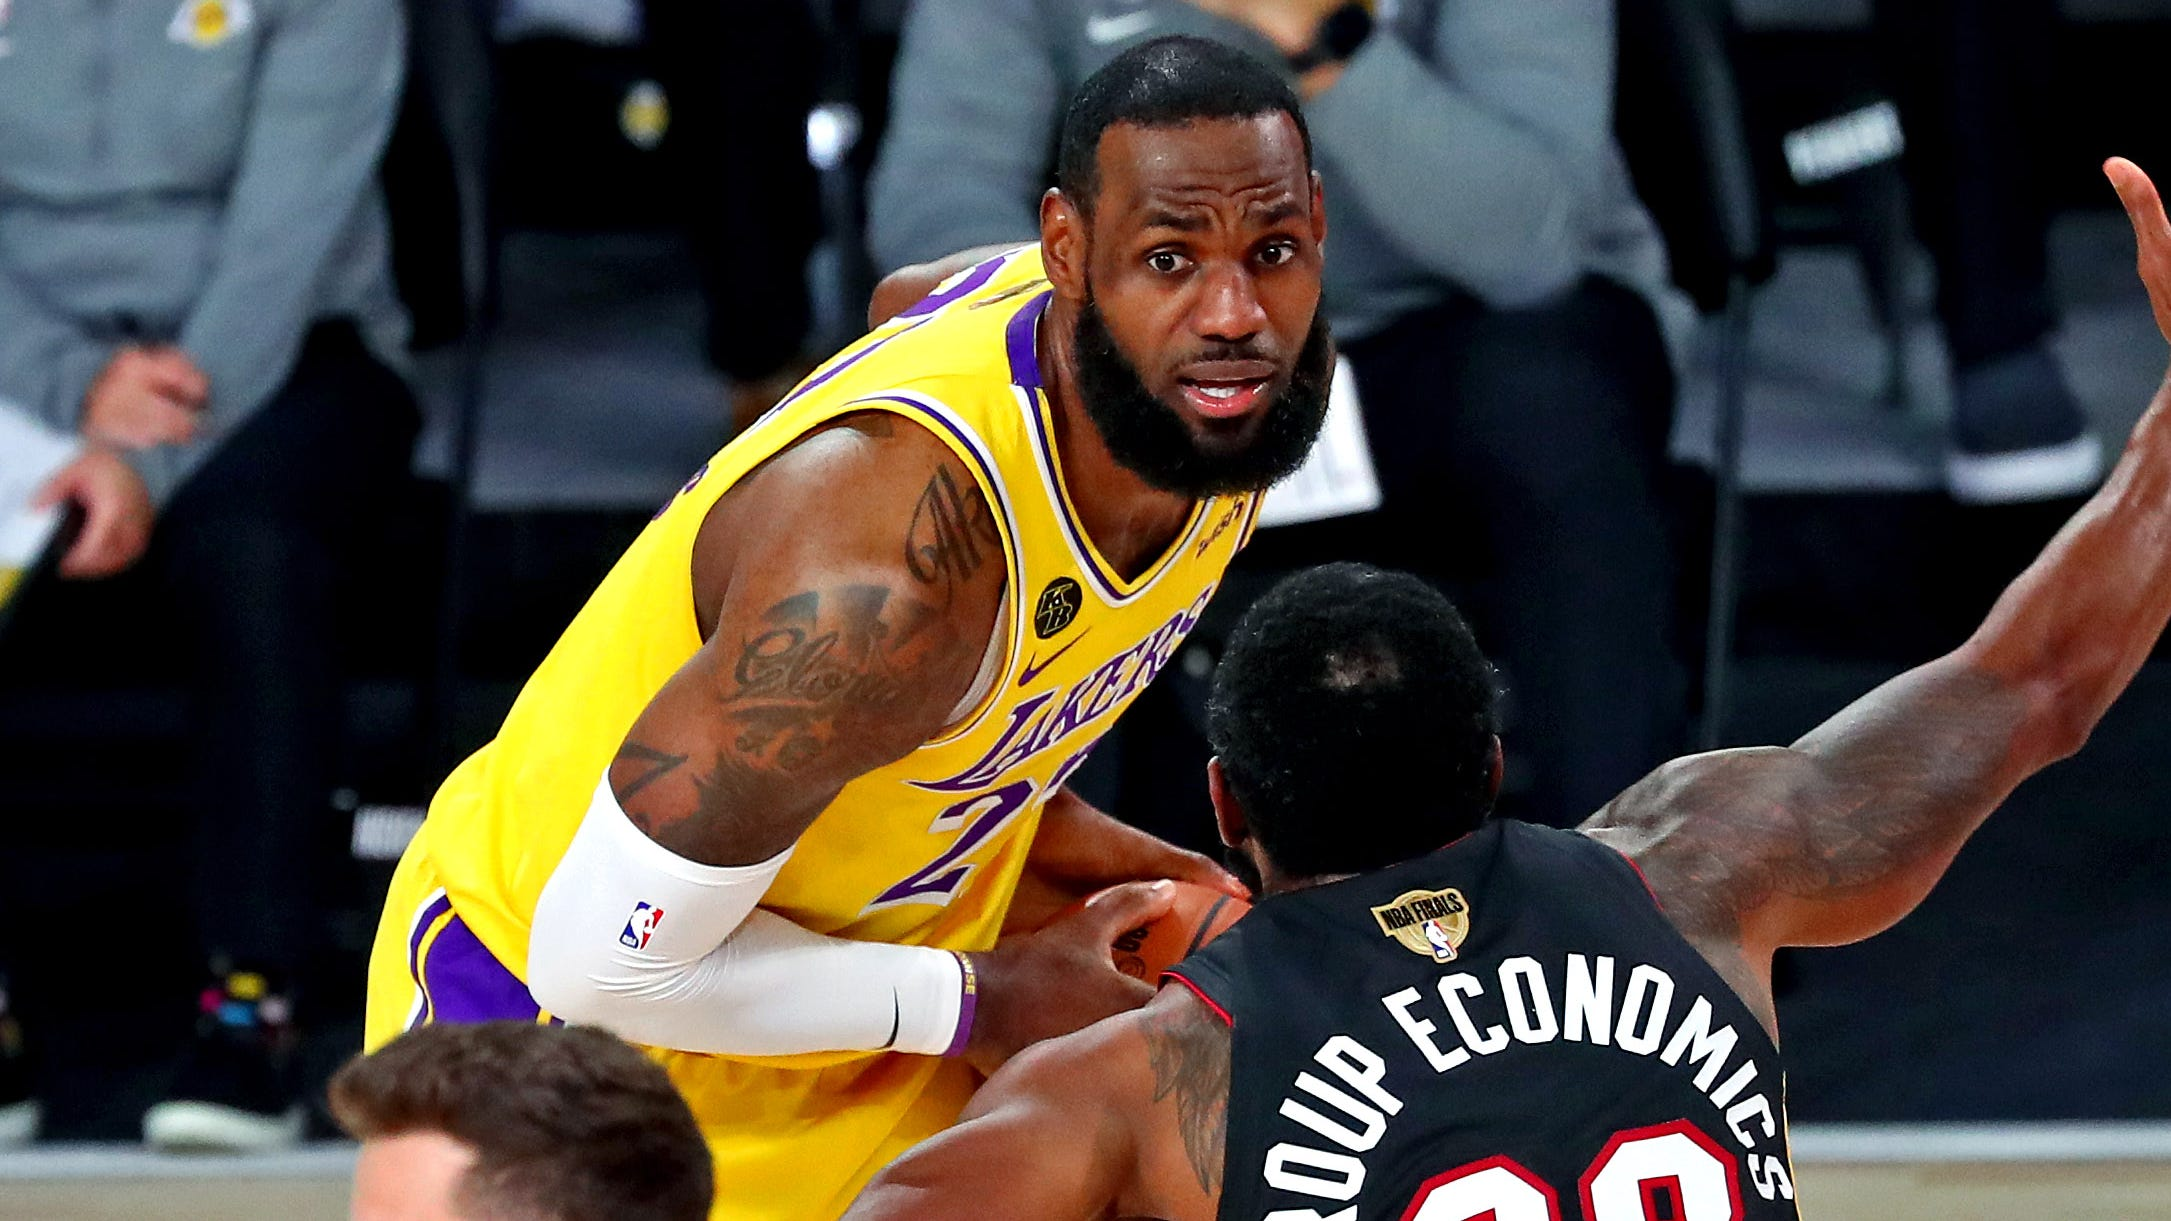 NBA Finals: LeBron James puts Lakers on brink of championship